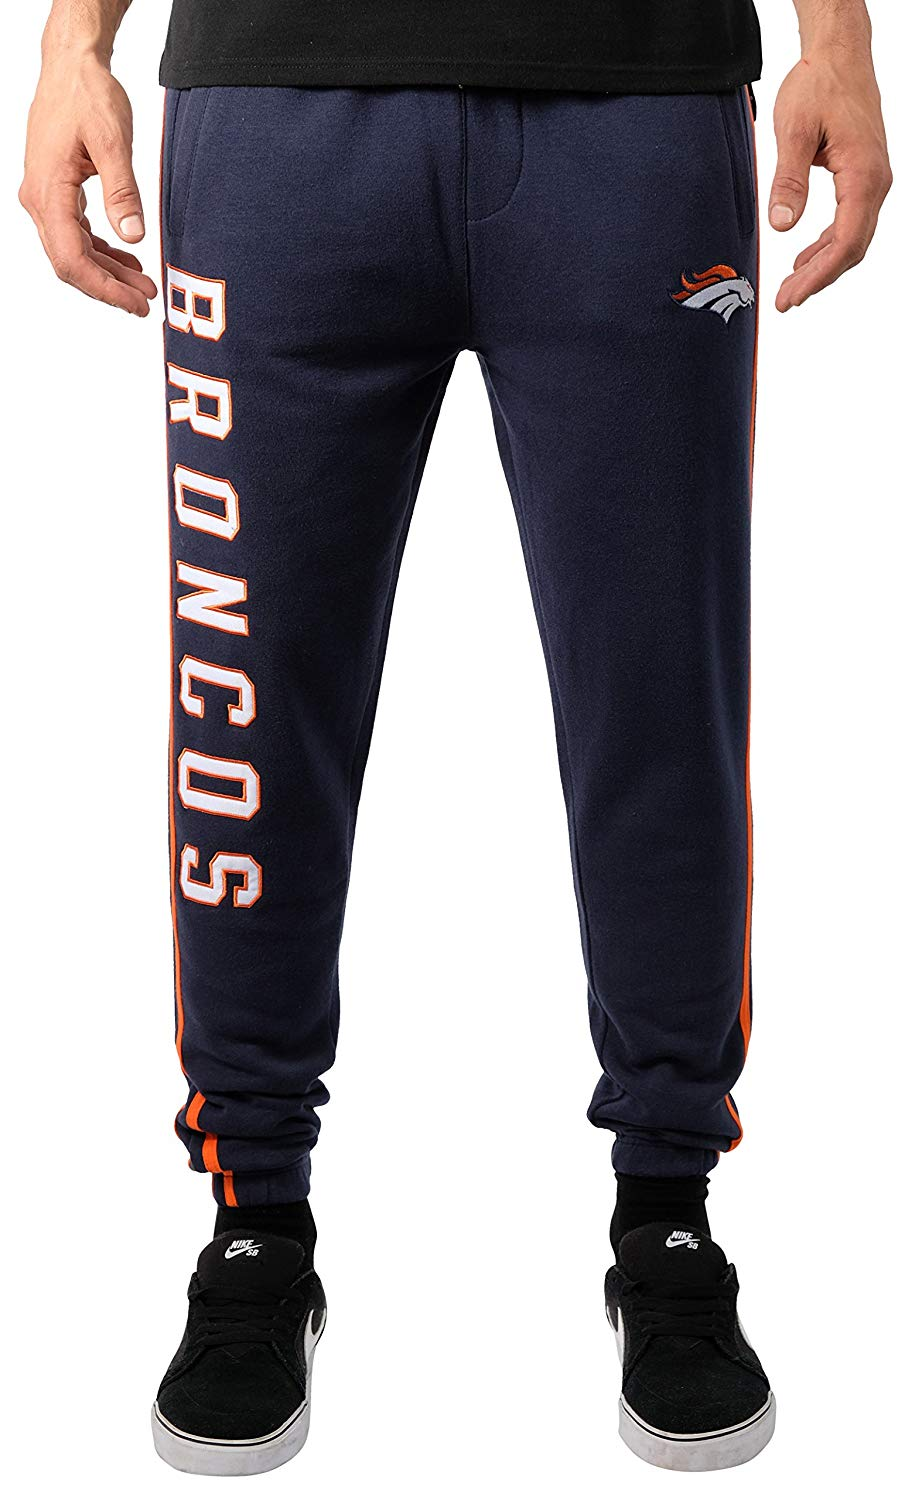 the choose your team joggers!! annnnd of course they don't have jags listed.  but many others are!